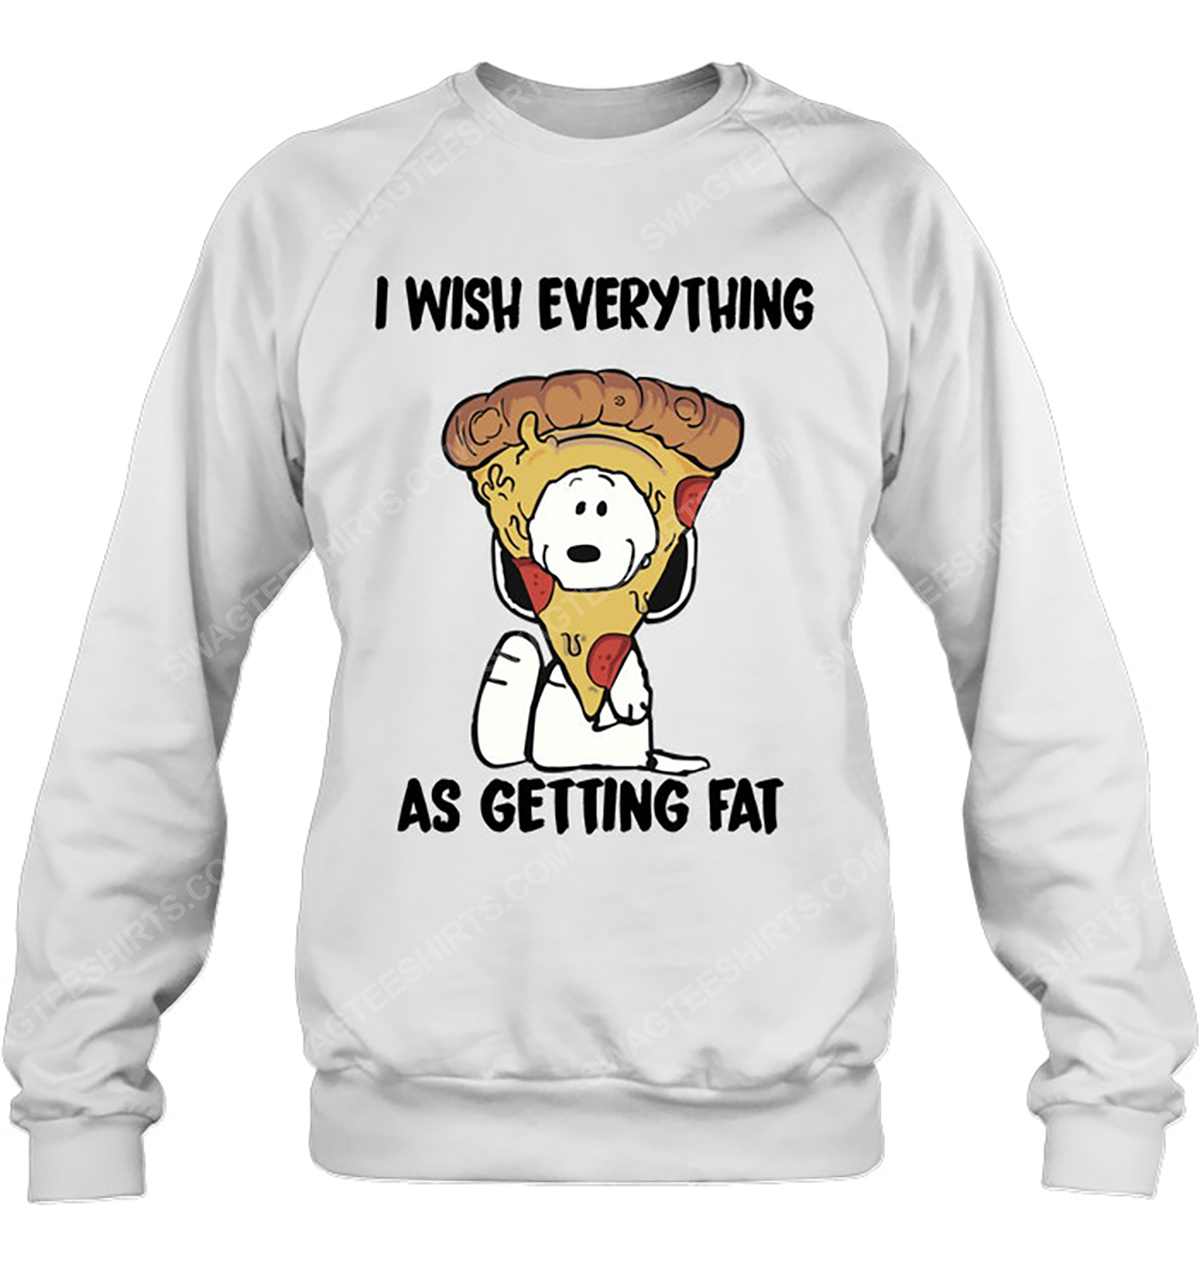 Snoopy and pizza i wish everything as getting eat sweatshirt 1